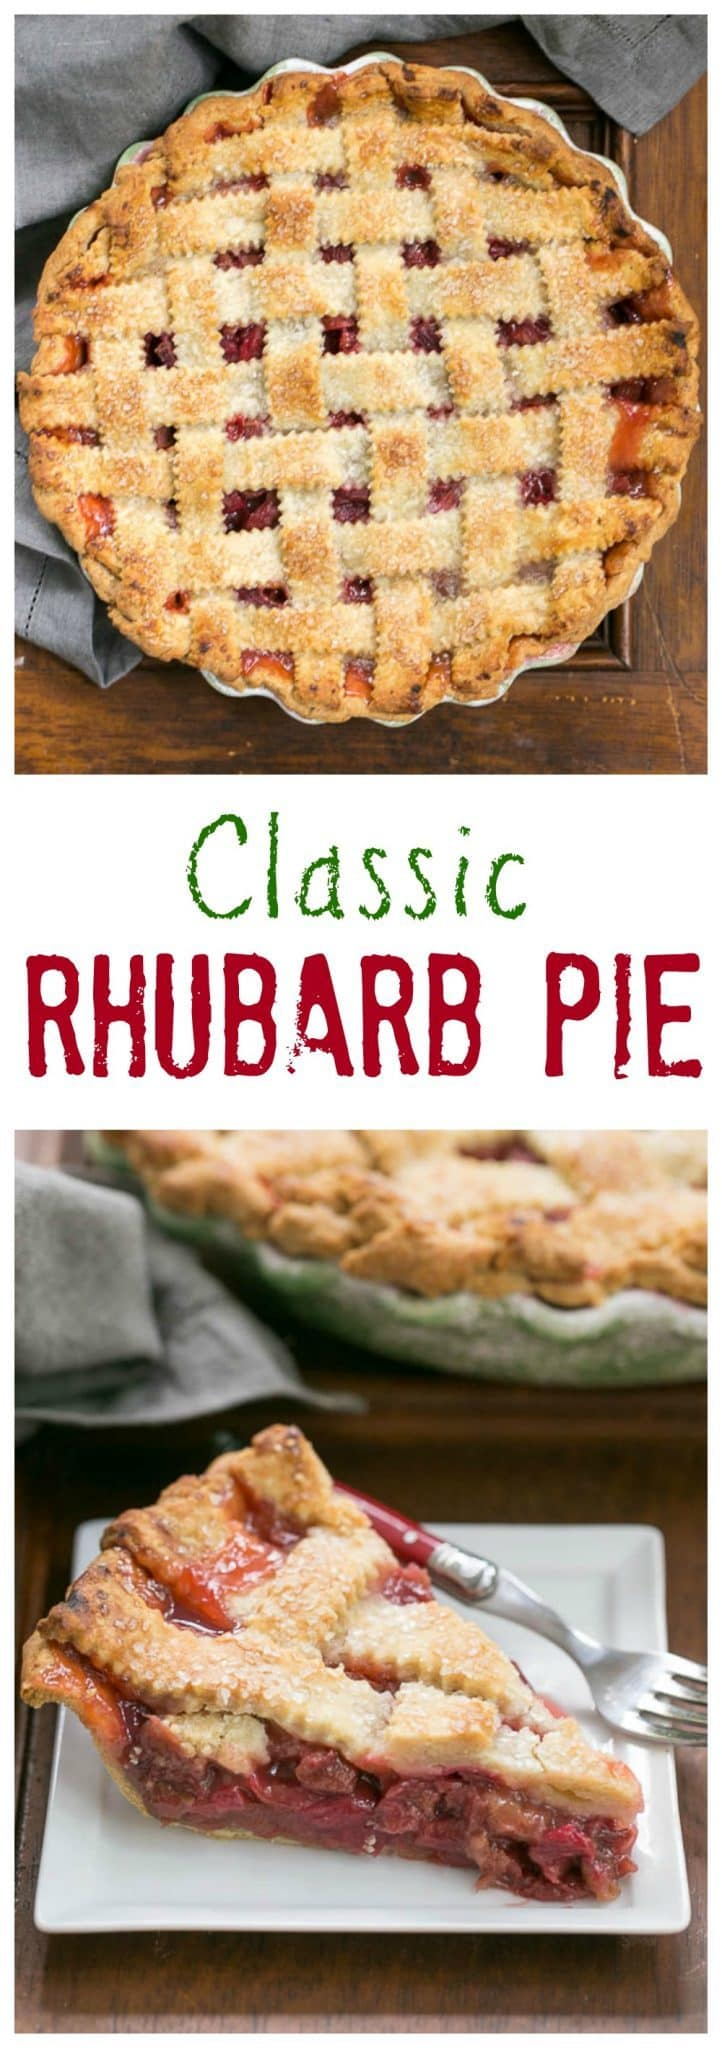 Classic Rhubarb Pie - That Skinny Chick Can Bake